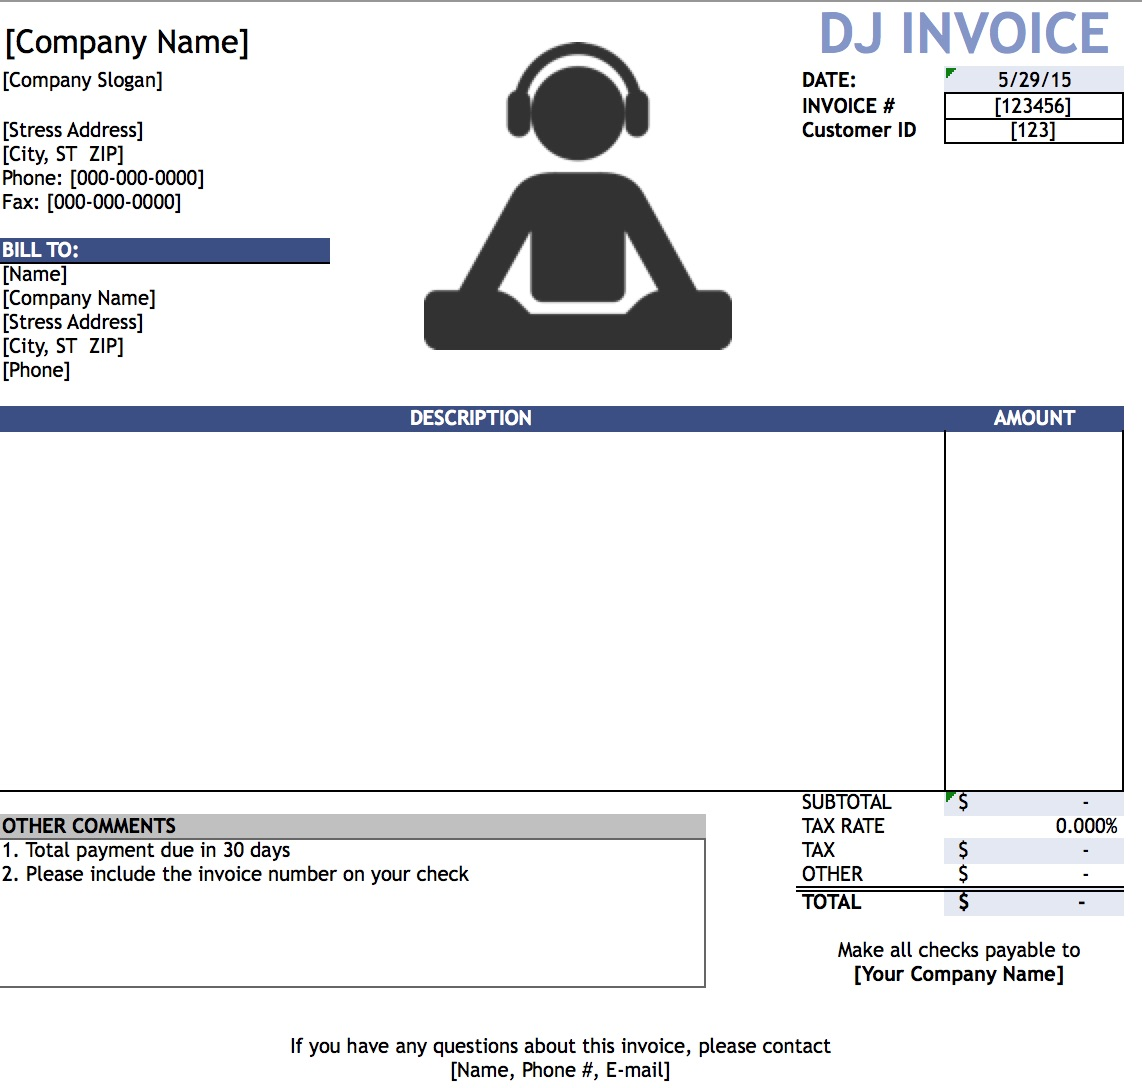 Free DJ Disc Jockey Invoice Template Excel PDF Word Doc - Invoice generator free for service business